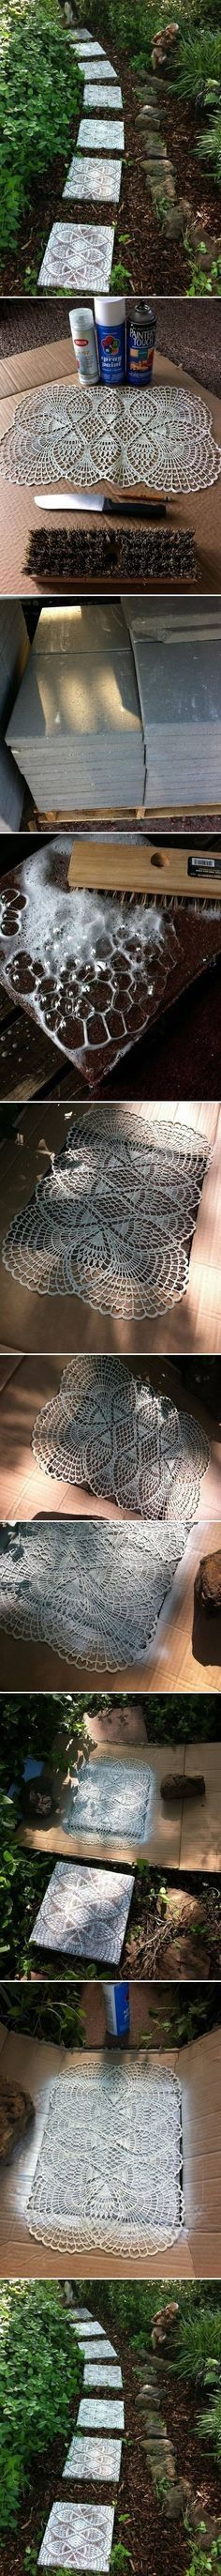 DIY Lace Like Stepping Stones - diy craft crafts easy crafts (follow the pictures step-by-step) Garden Path Ideas